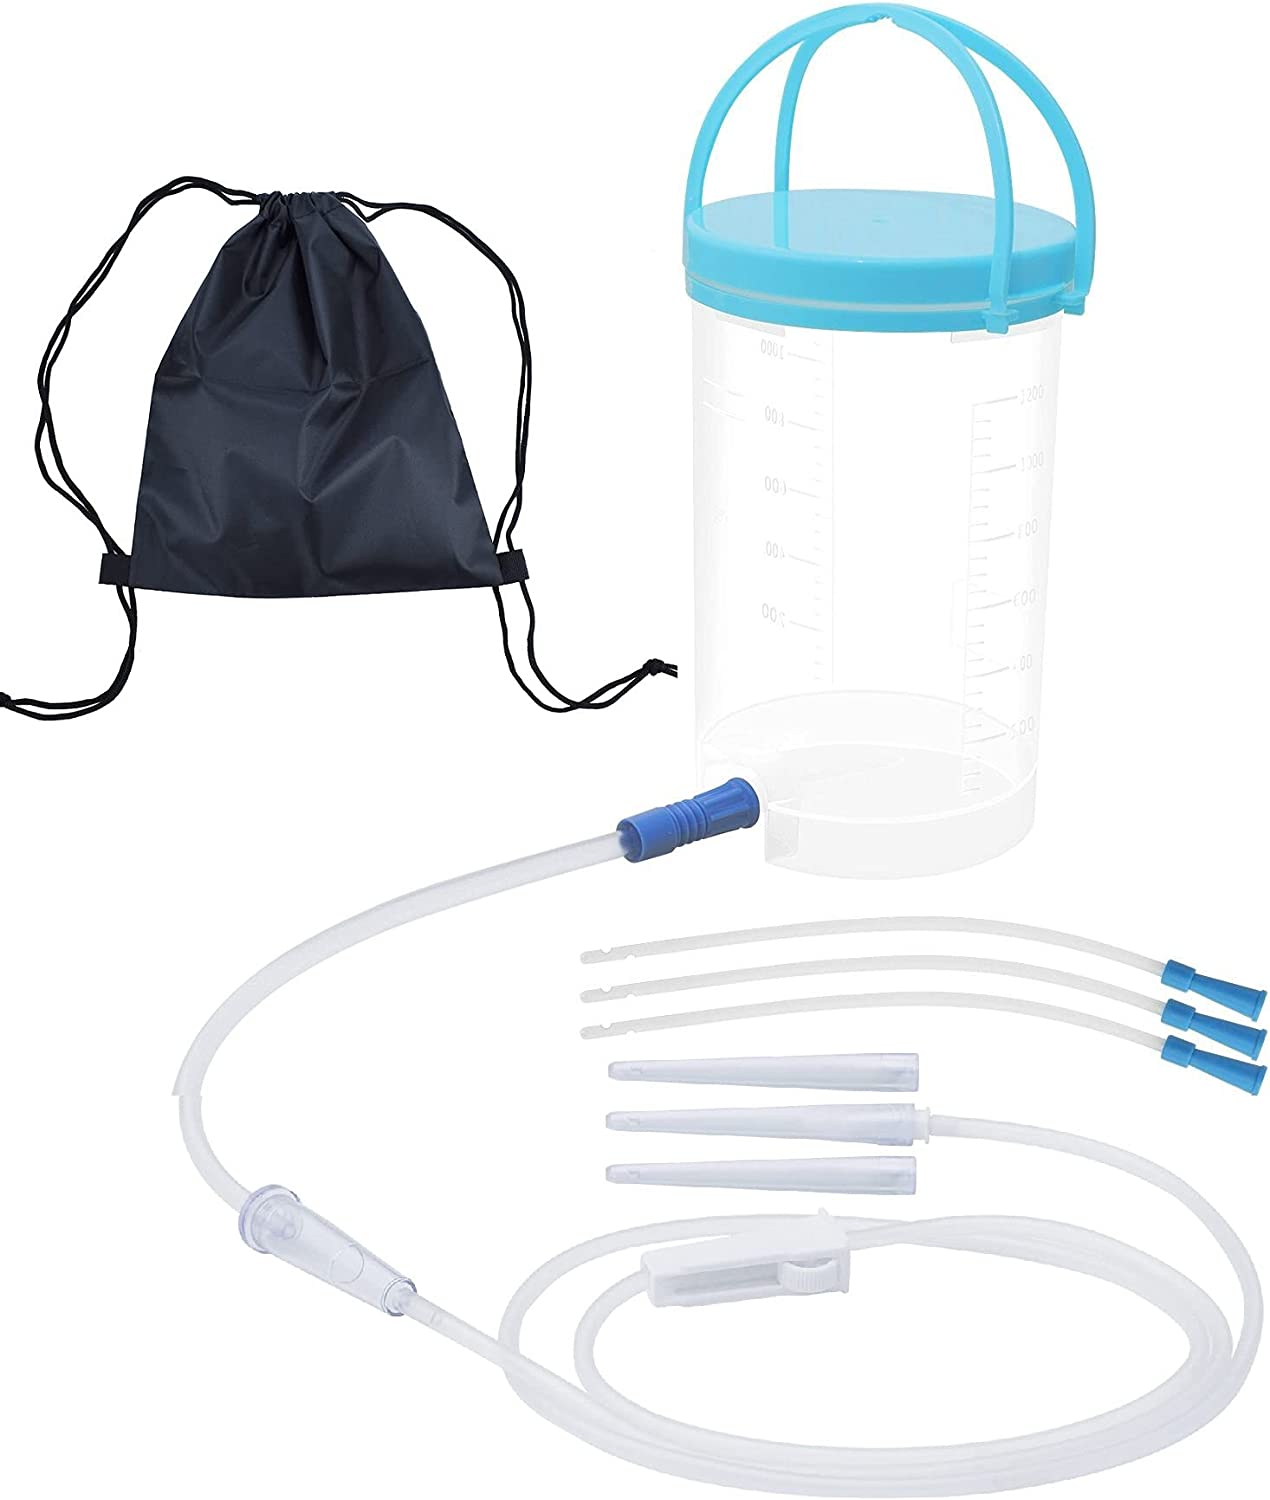 Enema Kit, Coffee Enema Bucket Set for Colon Cleansing Health with 6ft Silicone Tubing 3pcs Colon Tube 3pcs Replacement Nozzle Tips Travel Bag Reusable BPA Free for Home Shower